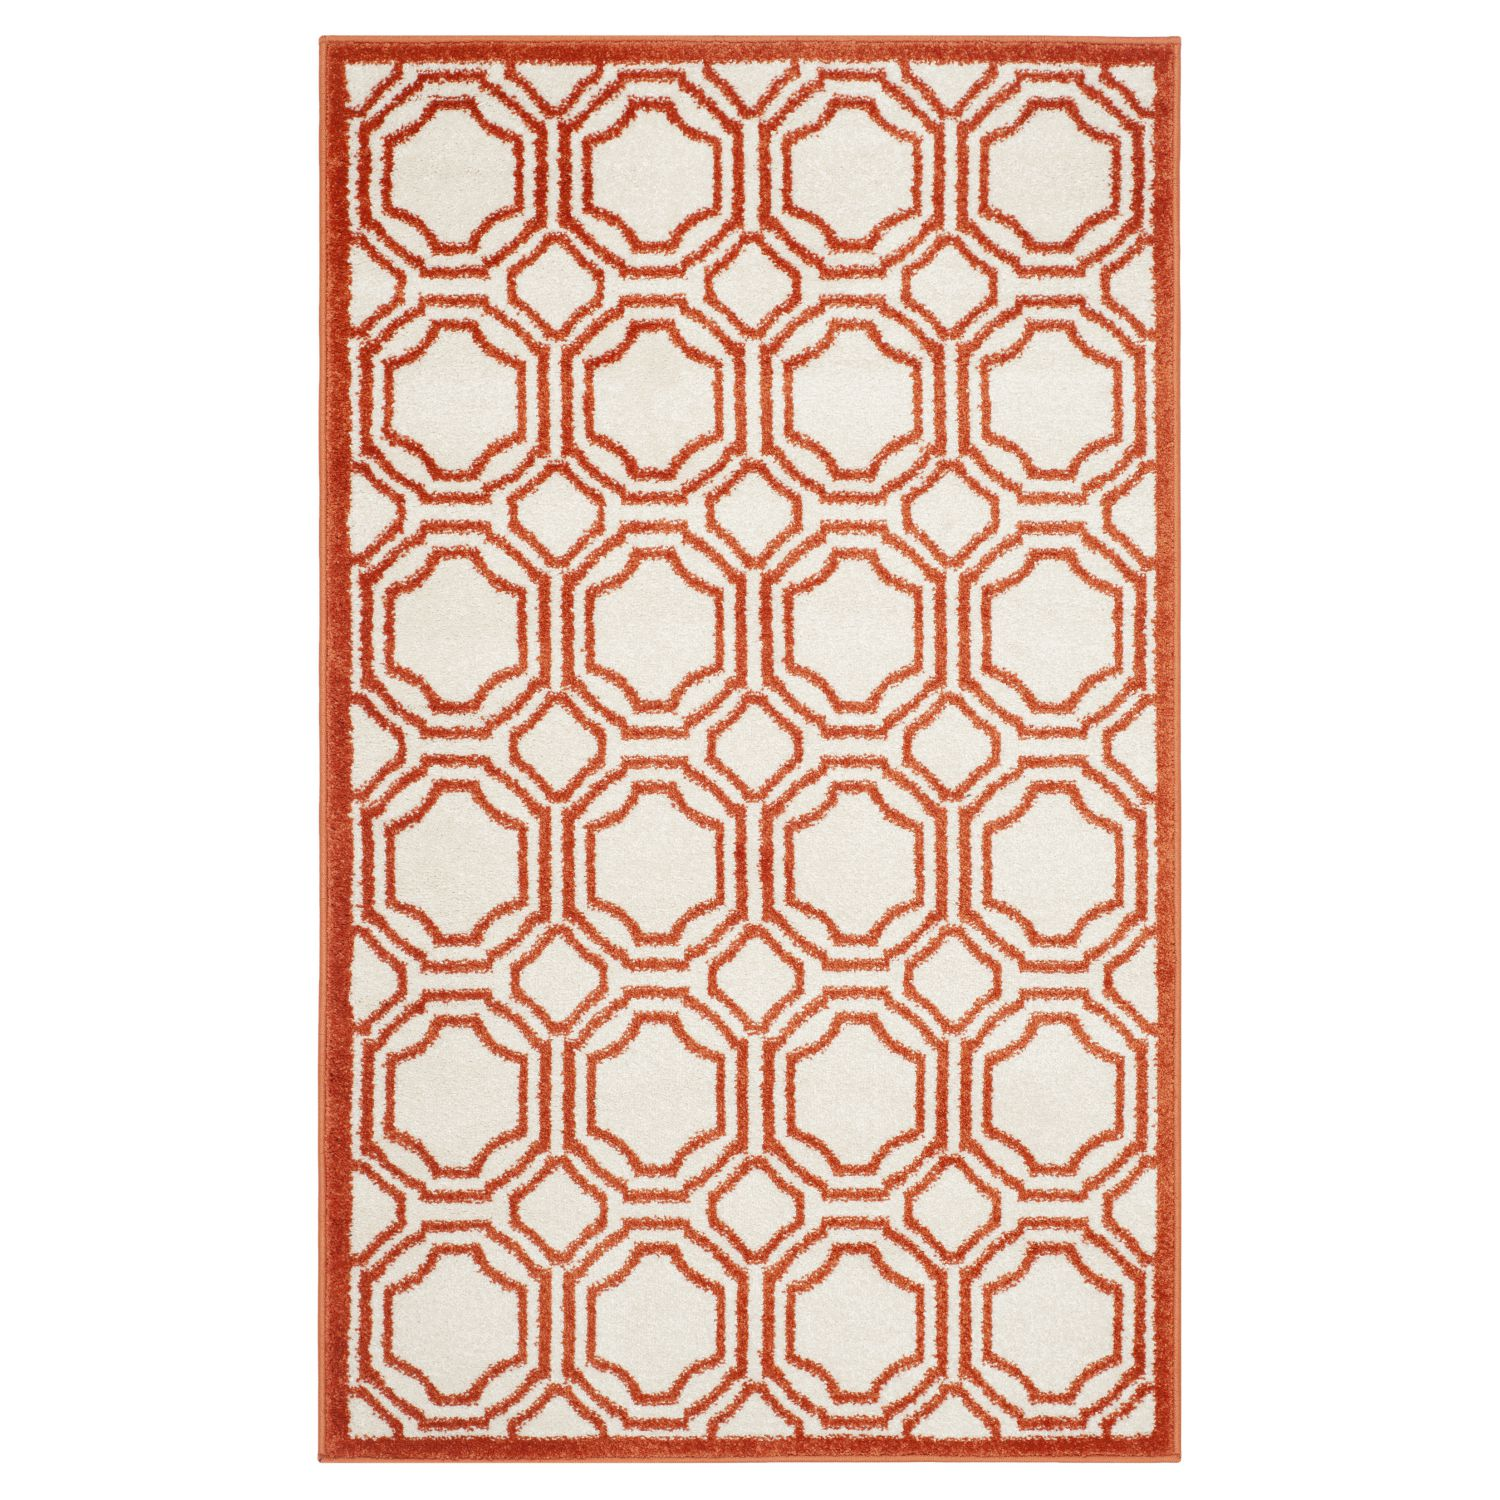 In-/Outdoorteppich Ferrat - Creme/Orange - Maße: 91 x 152 cm, Safavieh